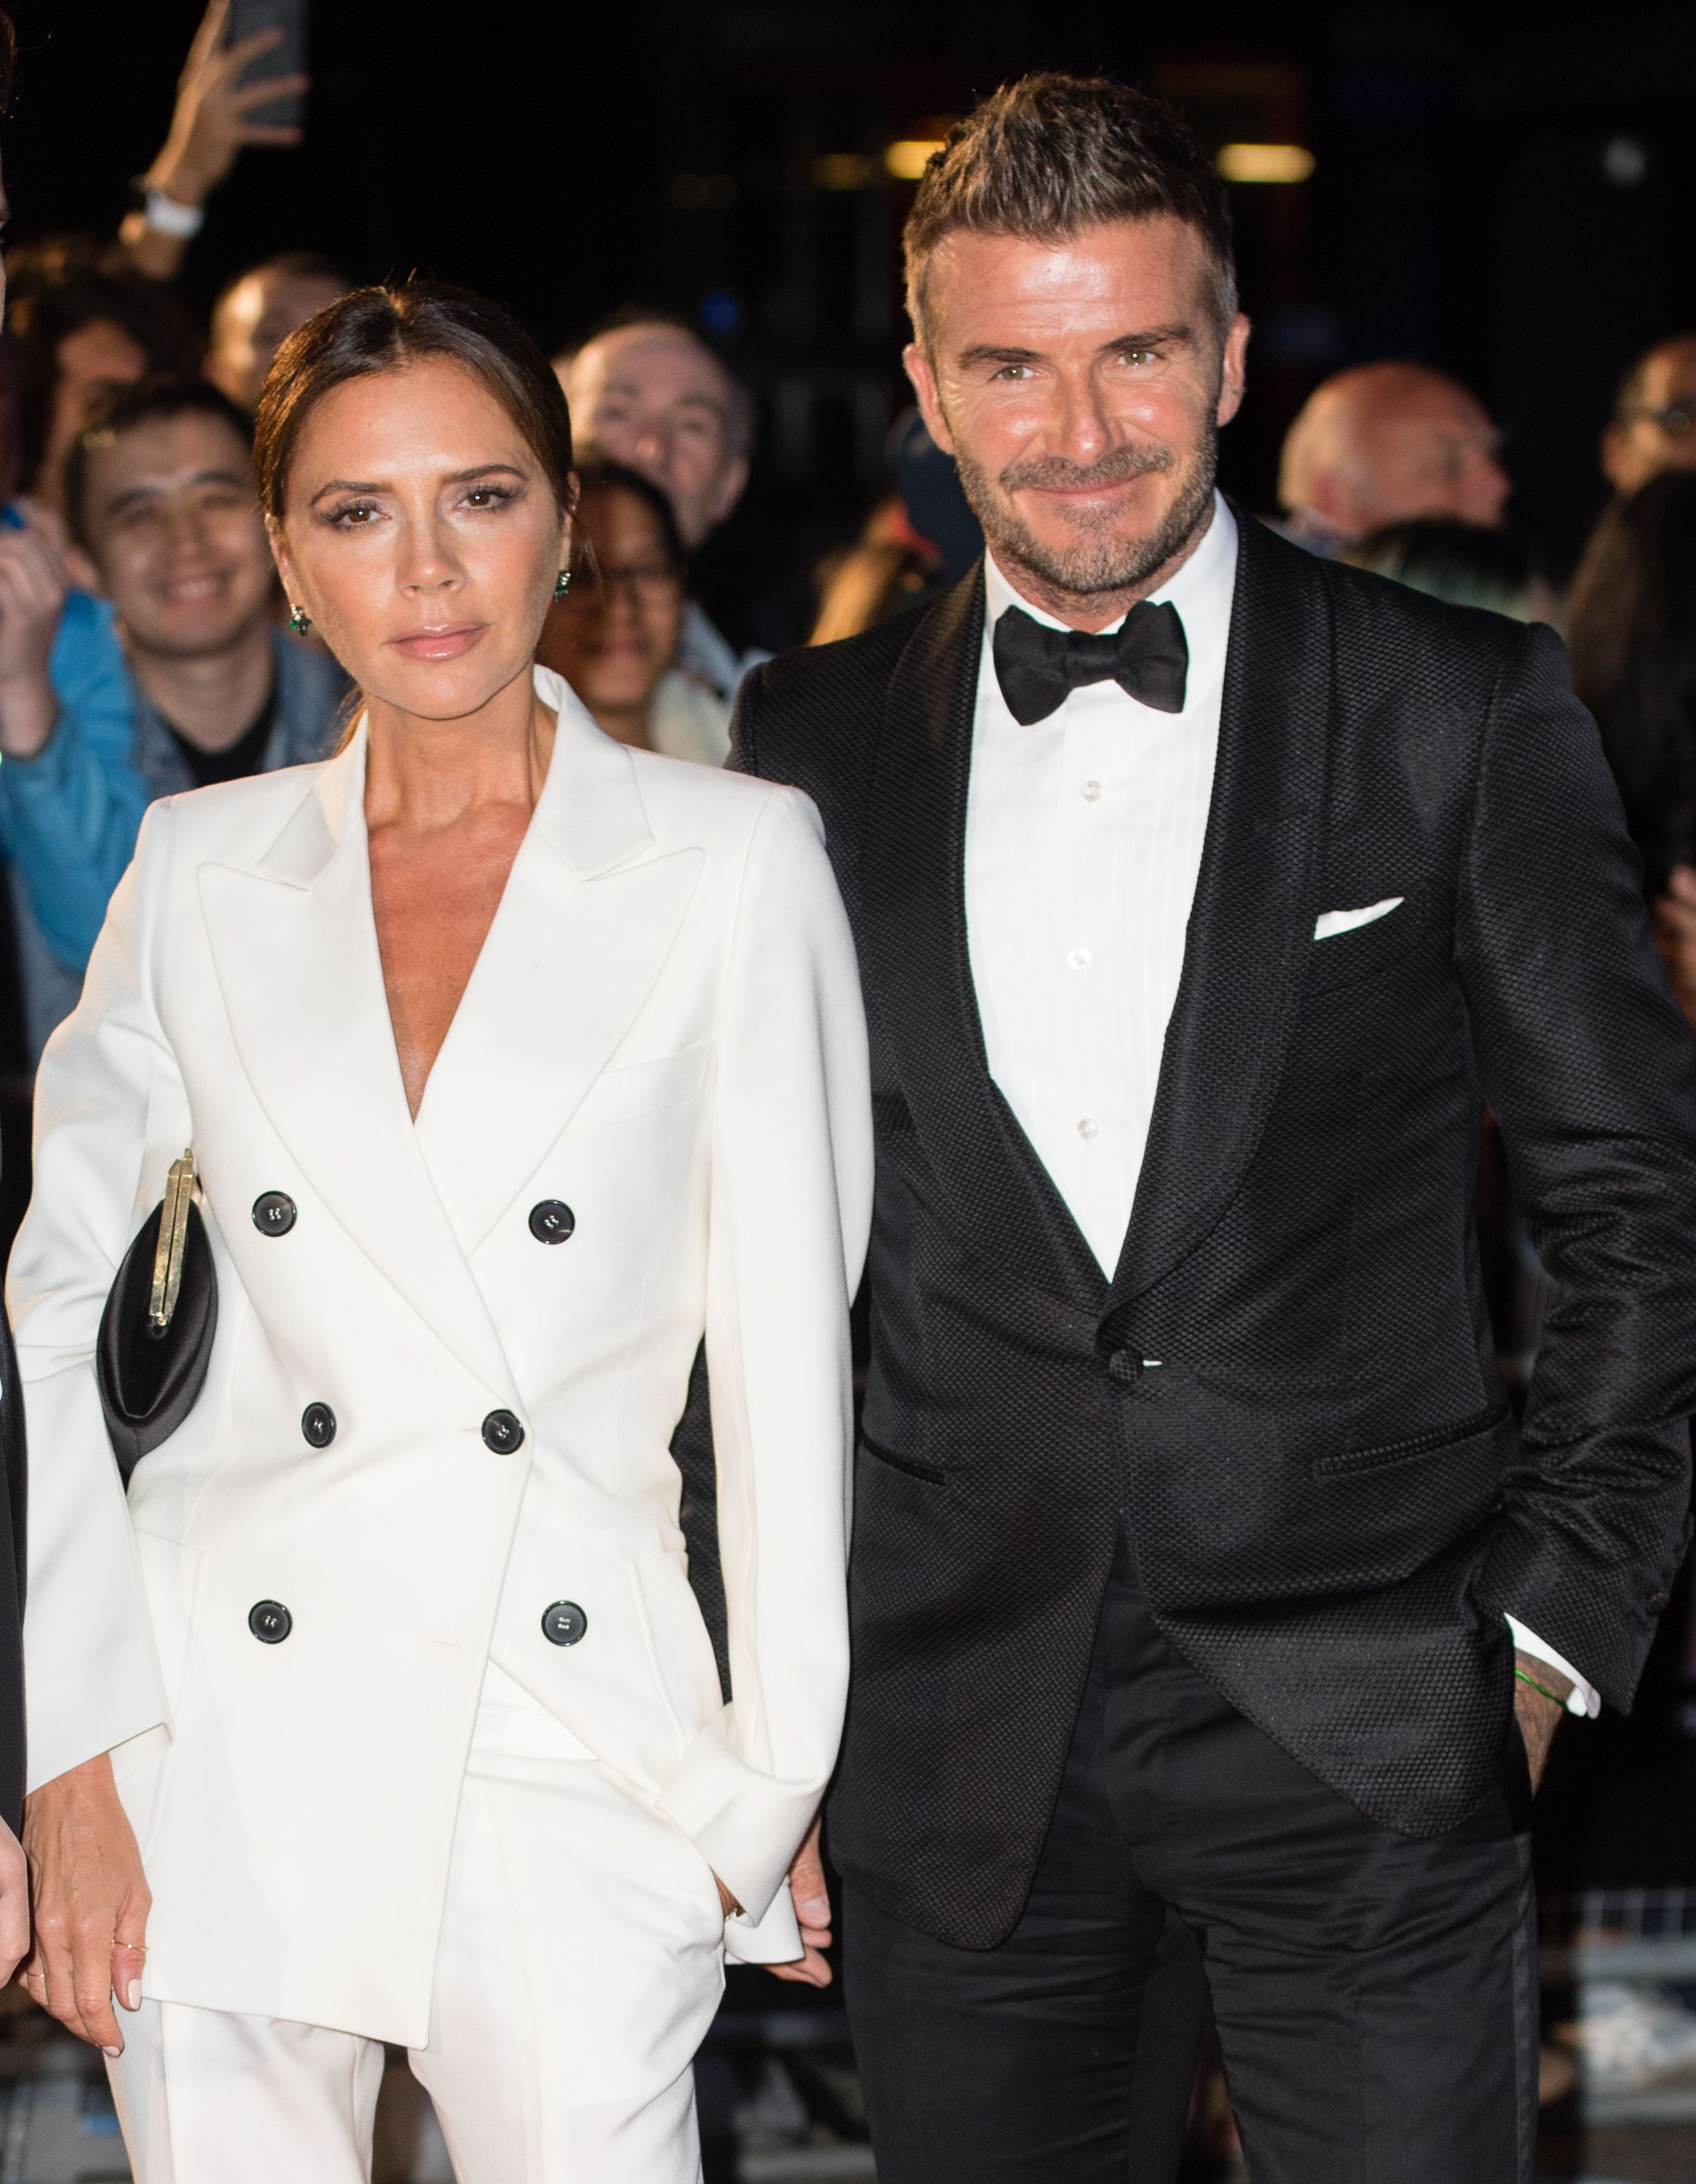 David Beckham dating historie